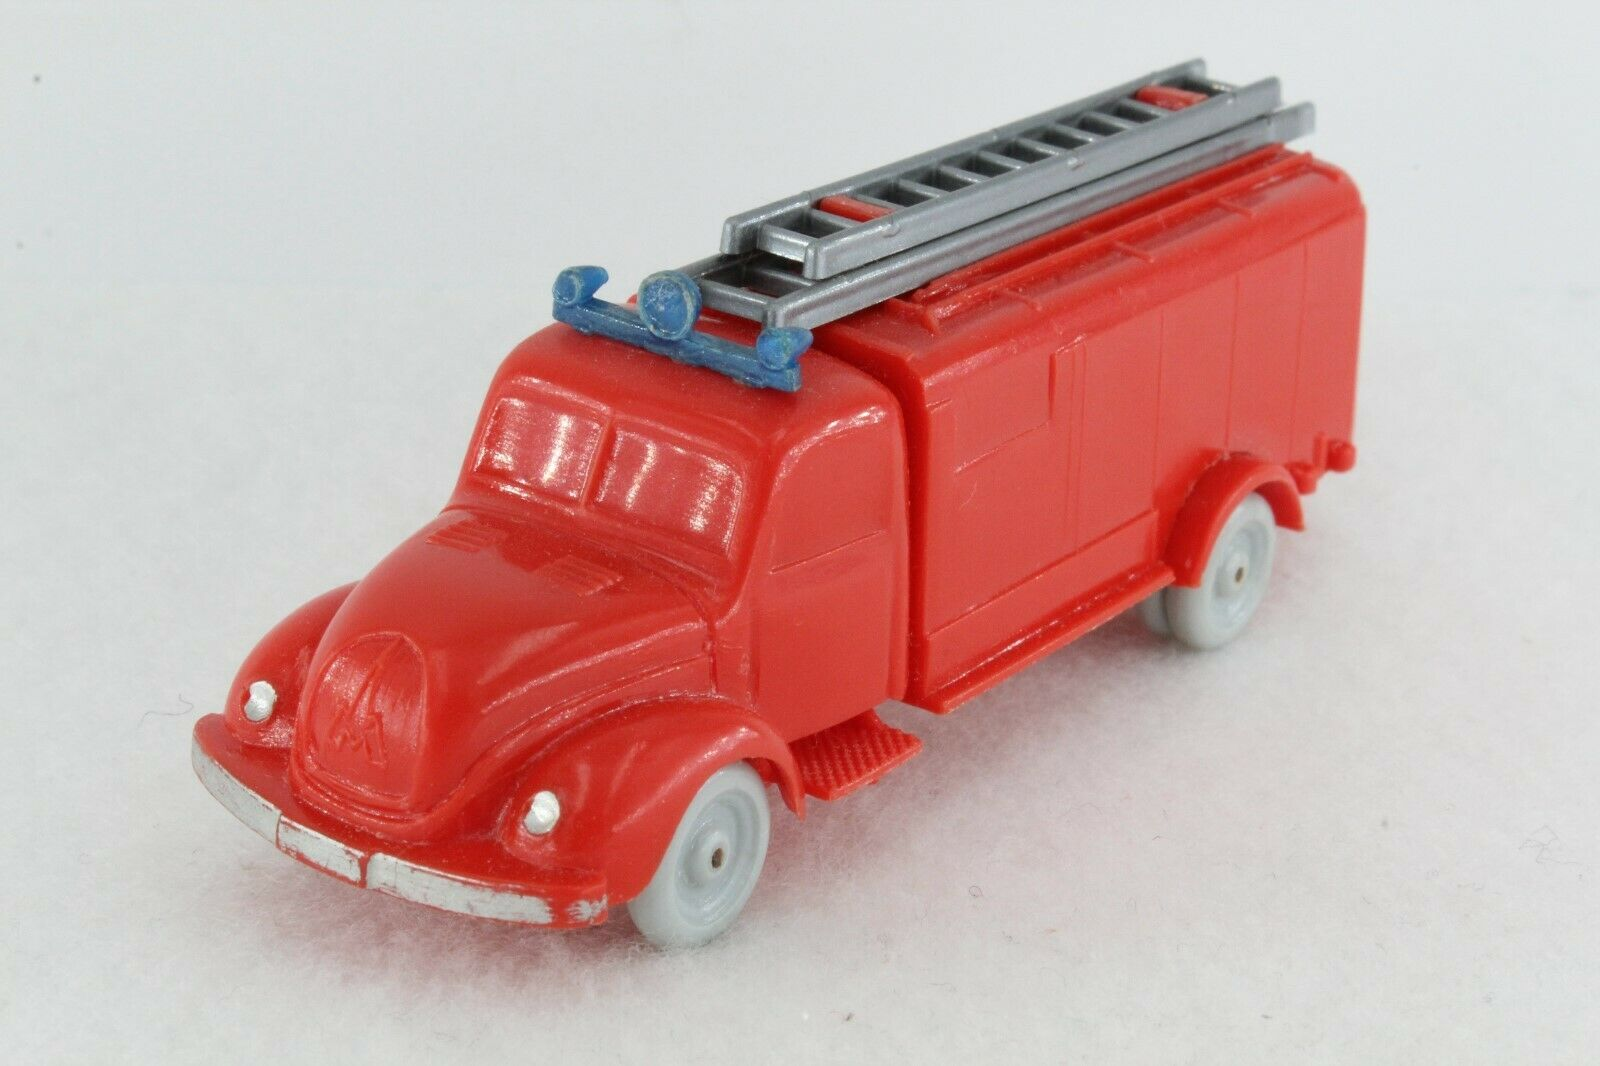 A.s.s Wiking Unverglast Fire ENGINE MAGIRUS Syringes Trolley 1955 GK 610 16 CS 267 2